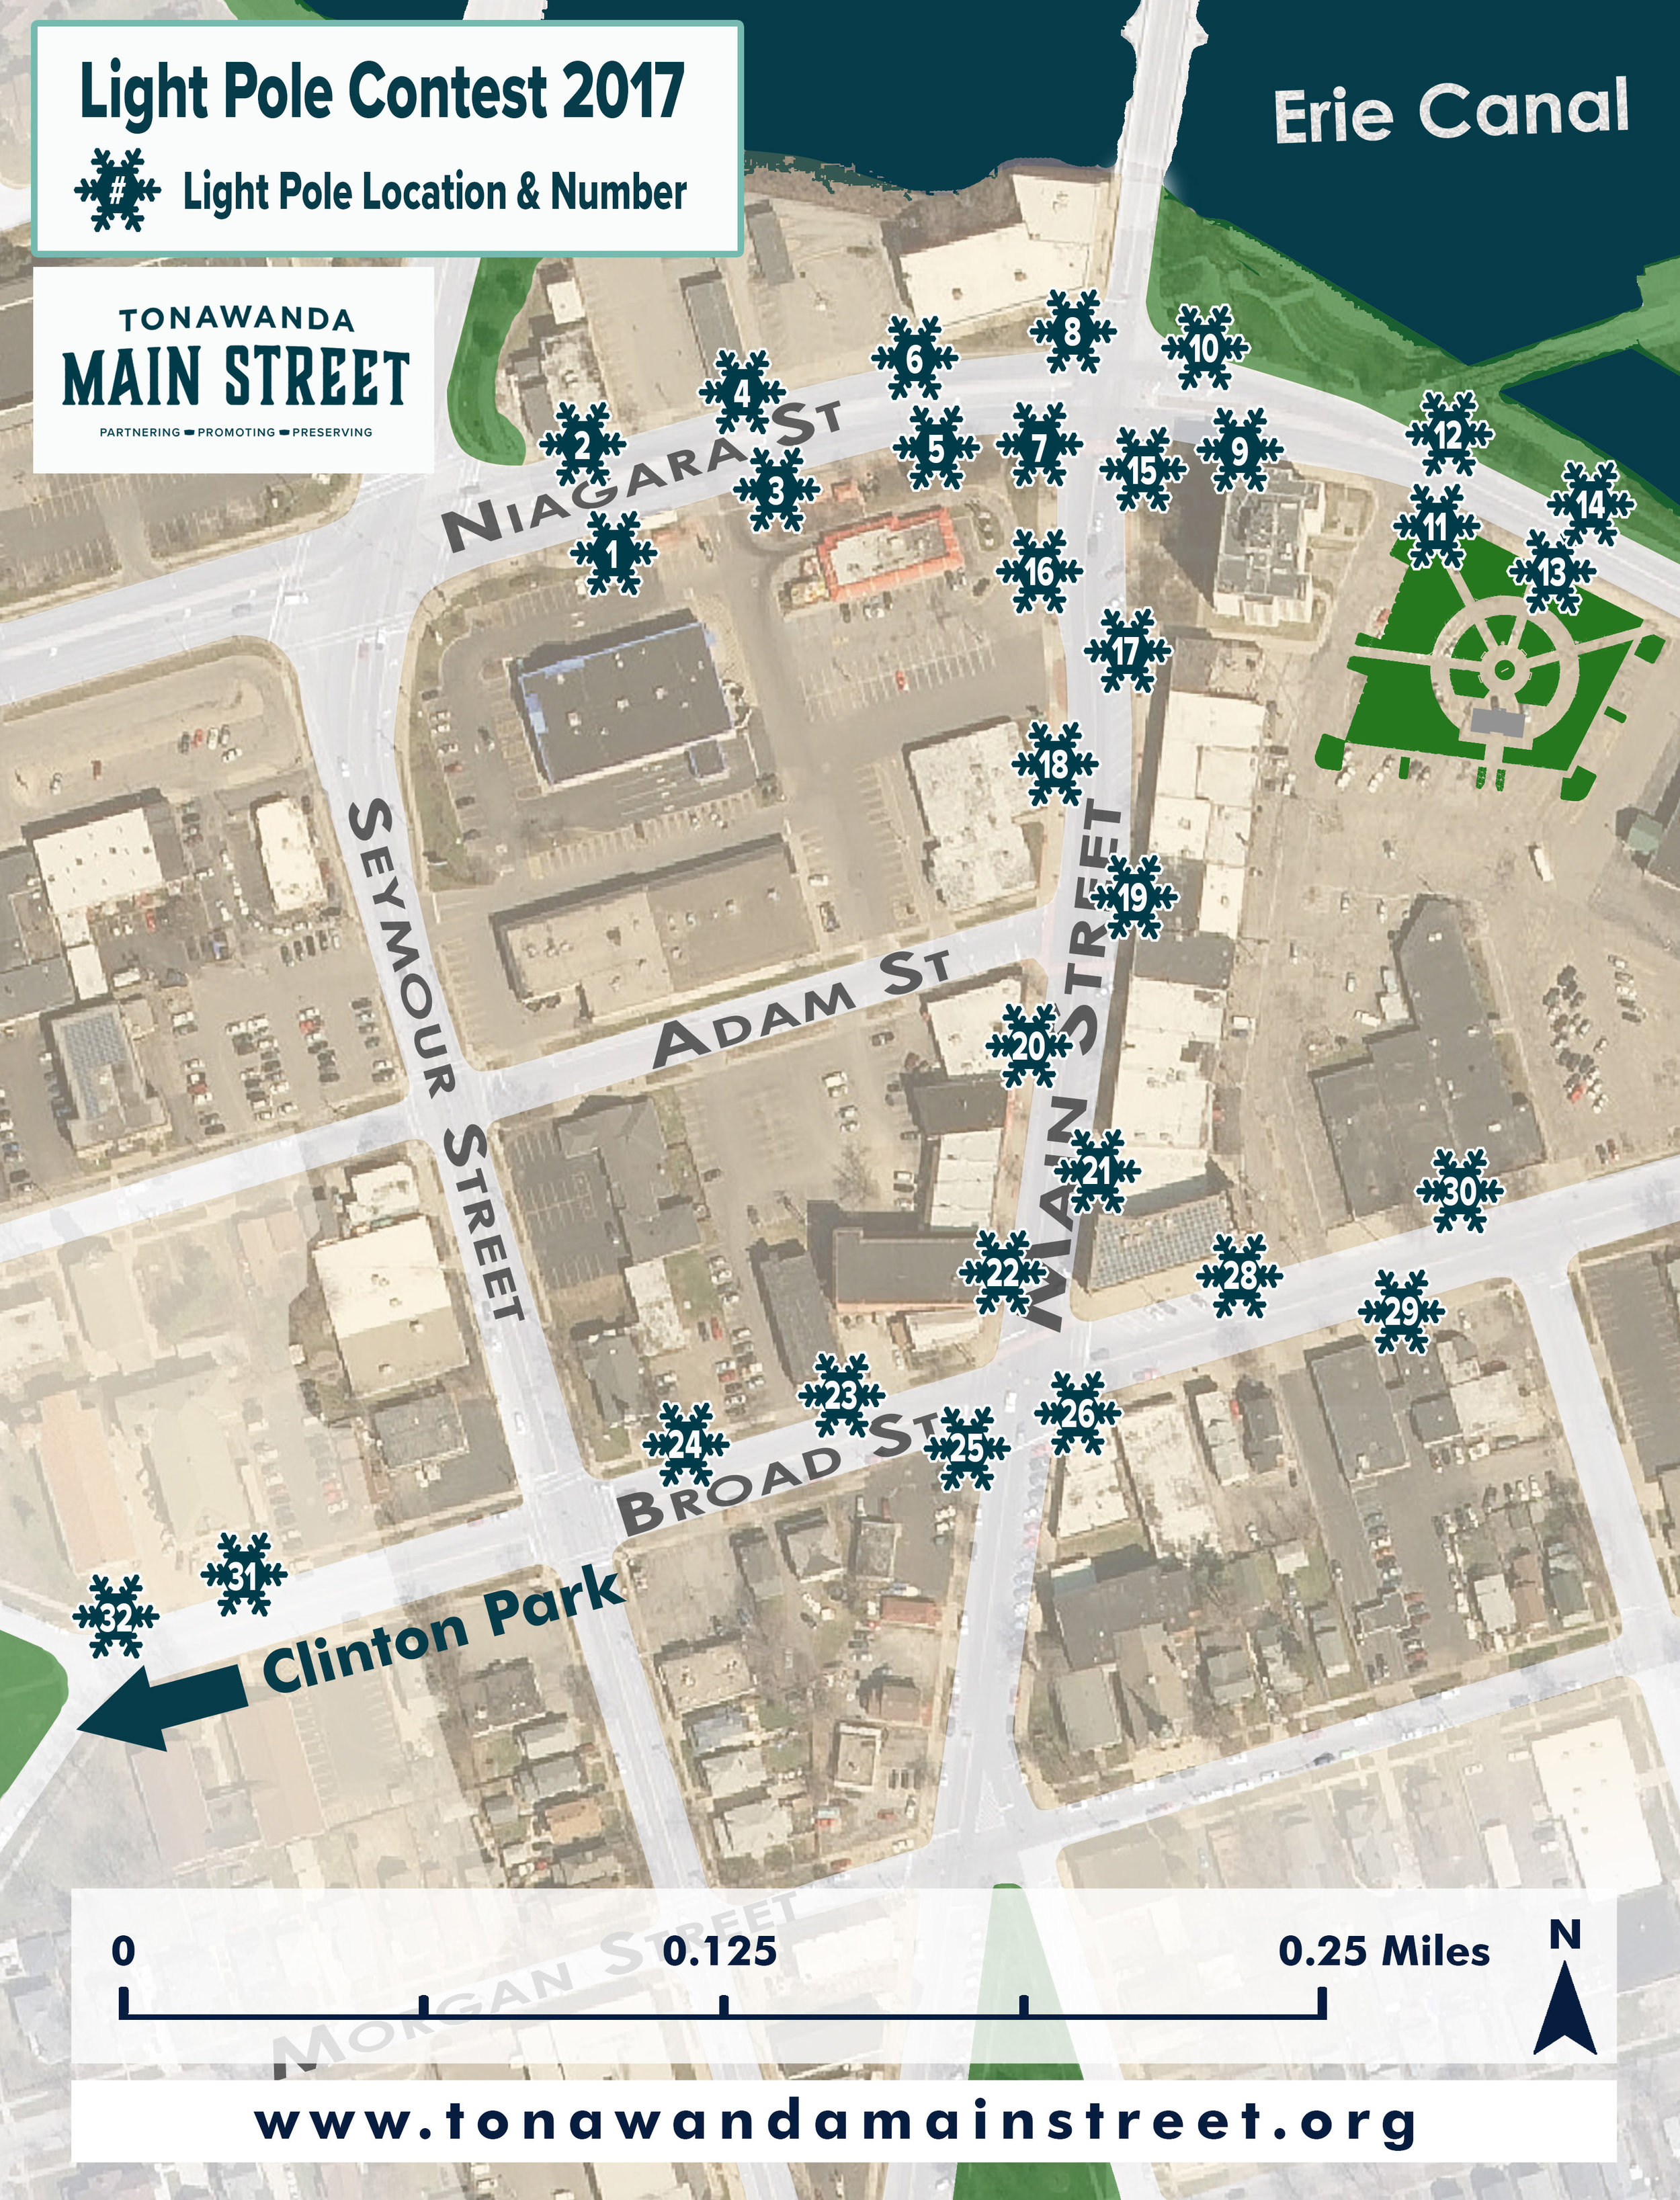 Map of Main Street Area - Light poles5.jpg